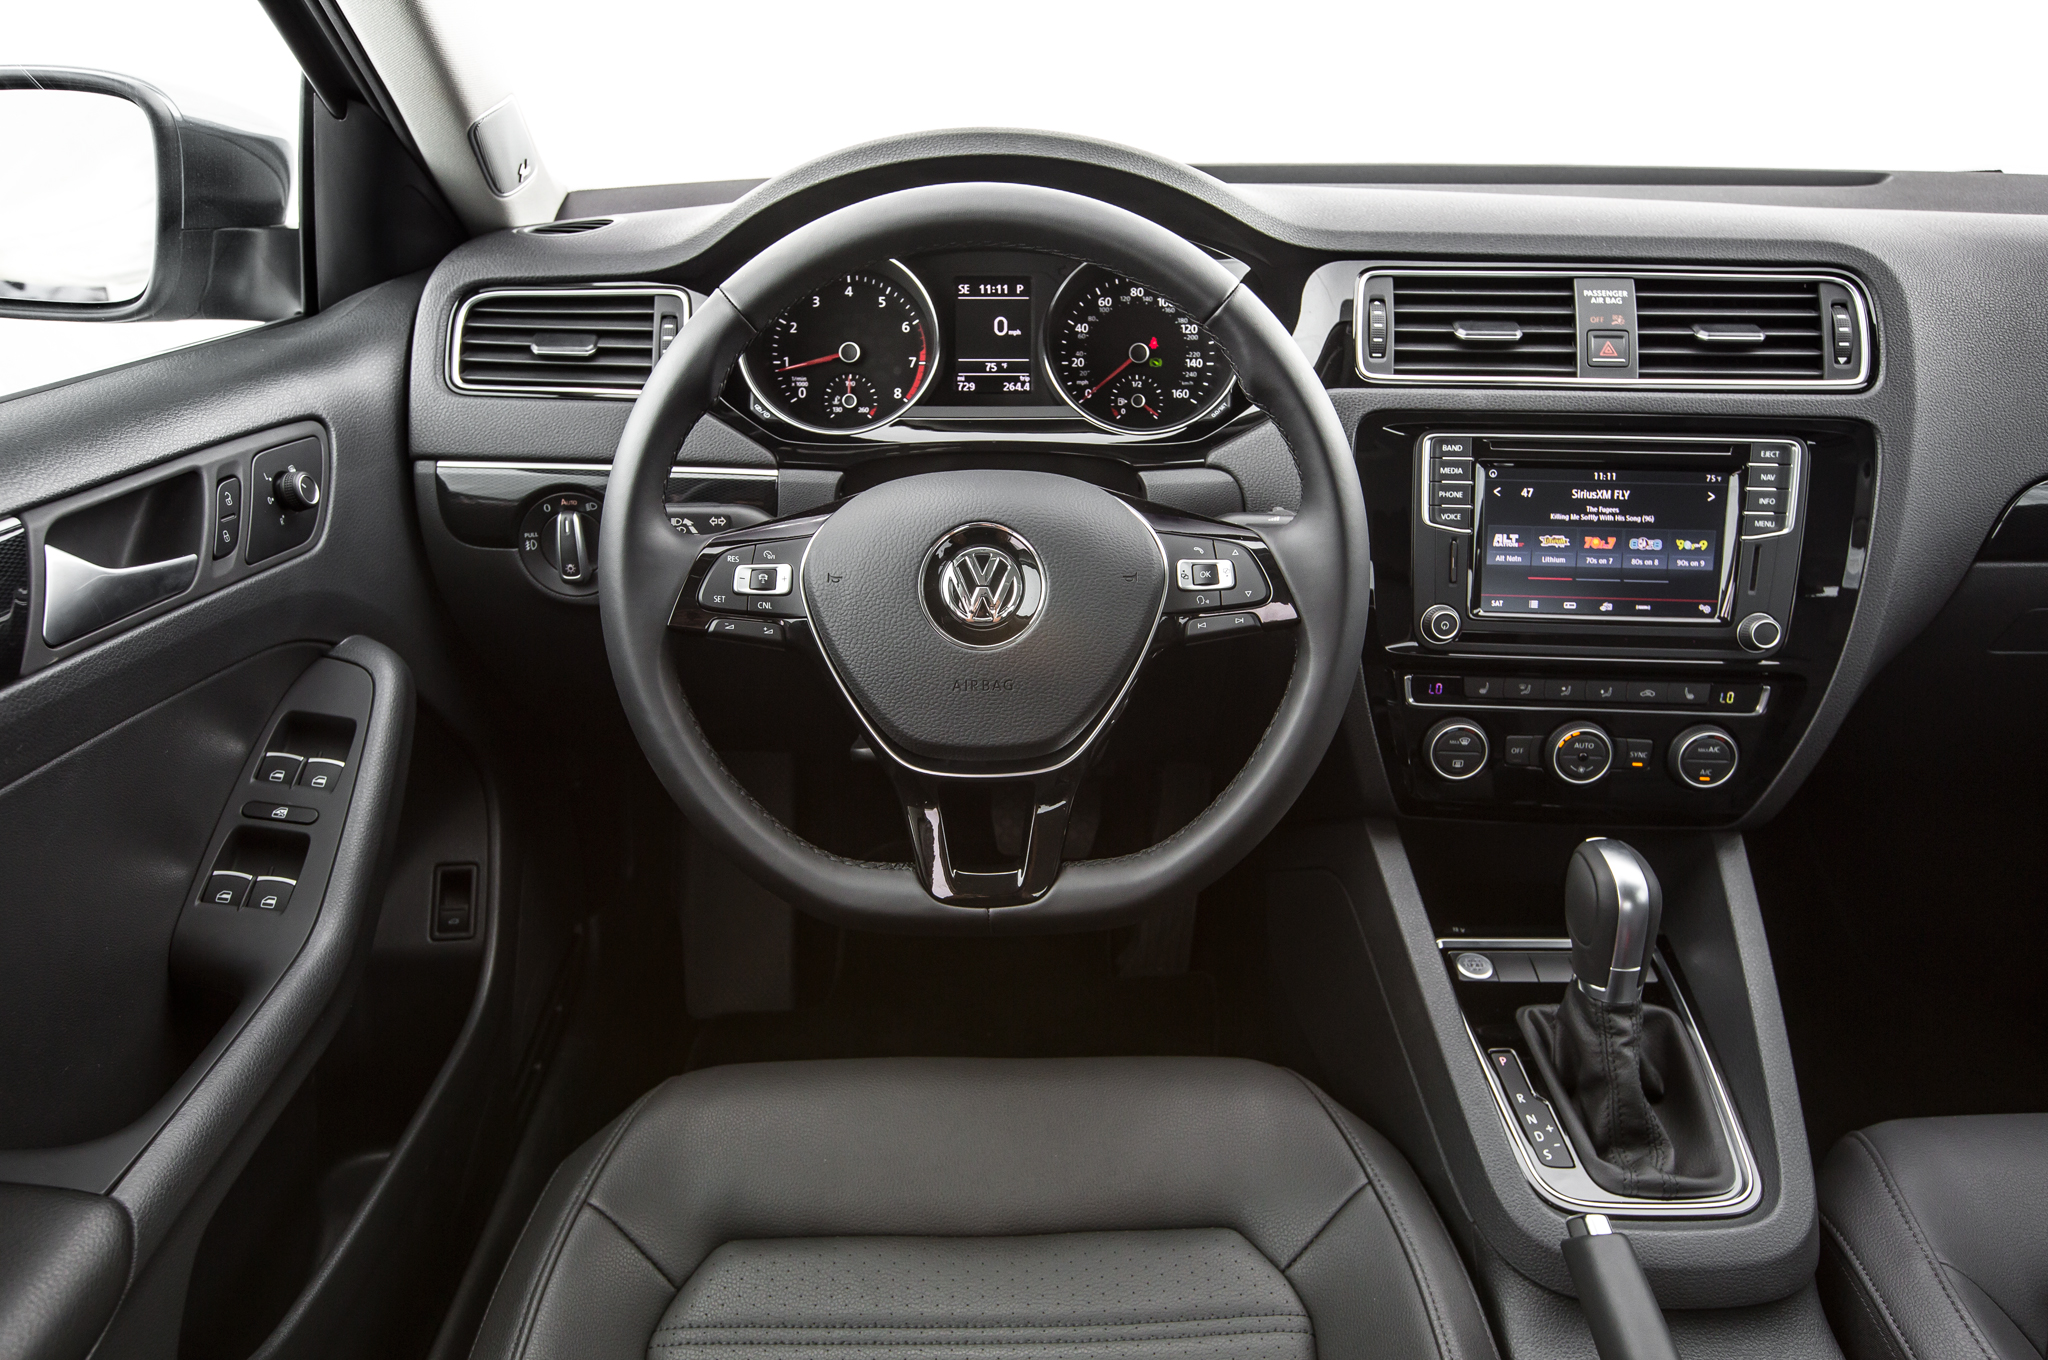 The 2016 Volkswagen Jetta SEL